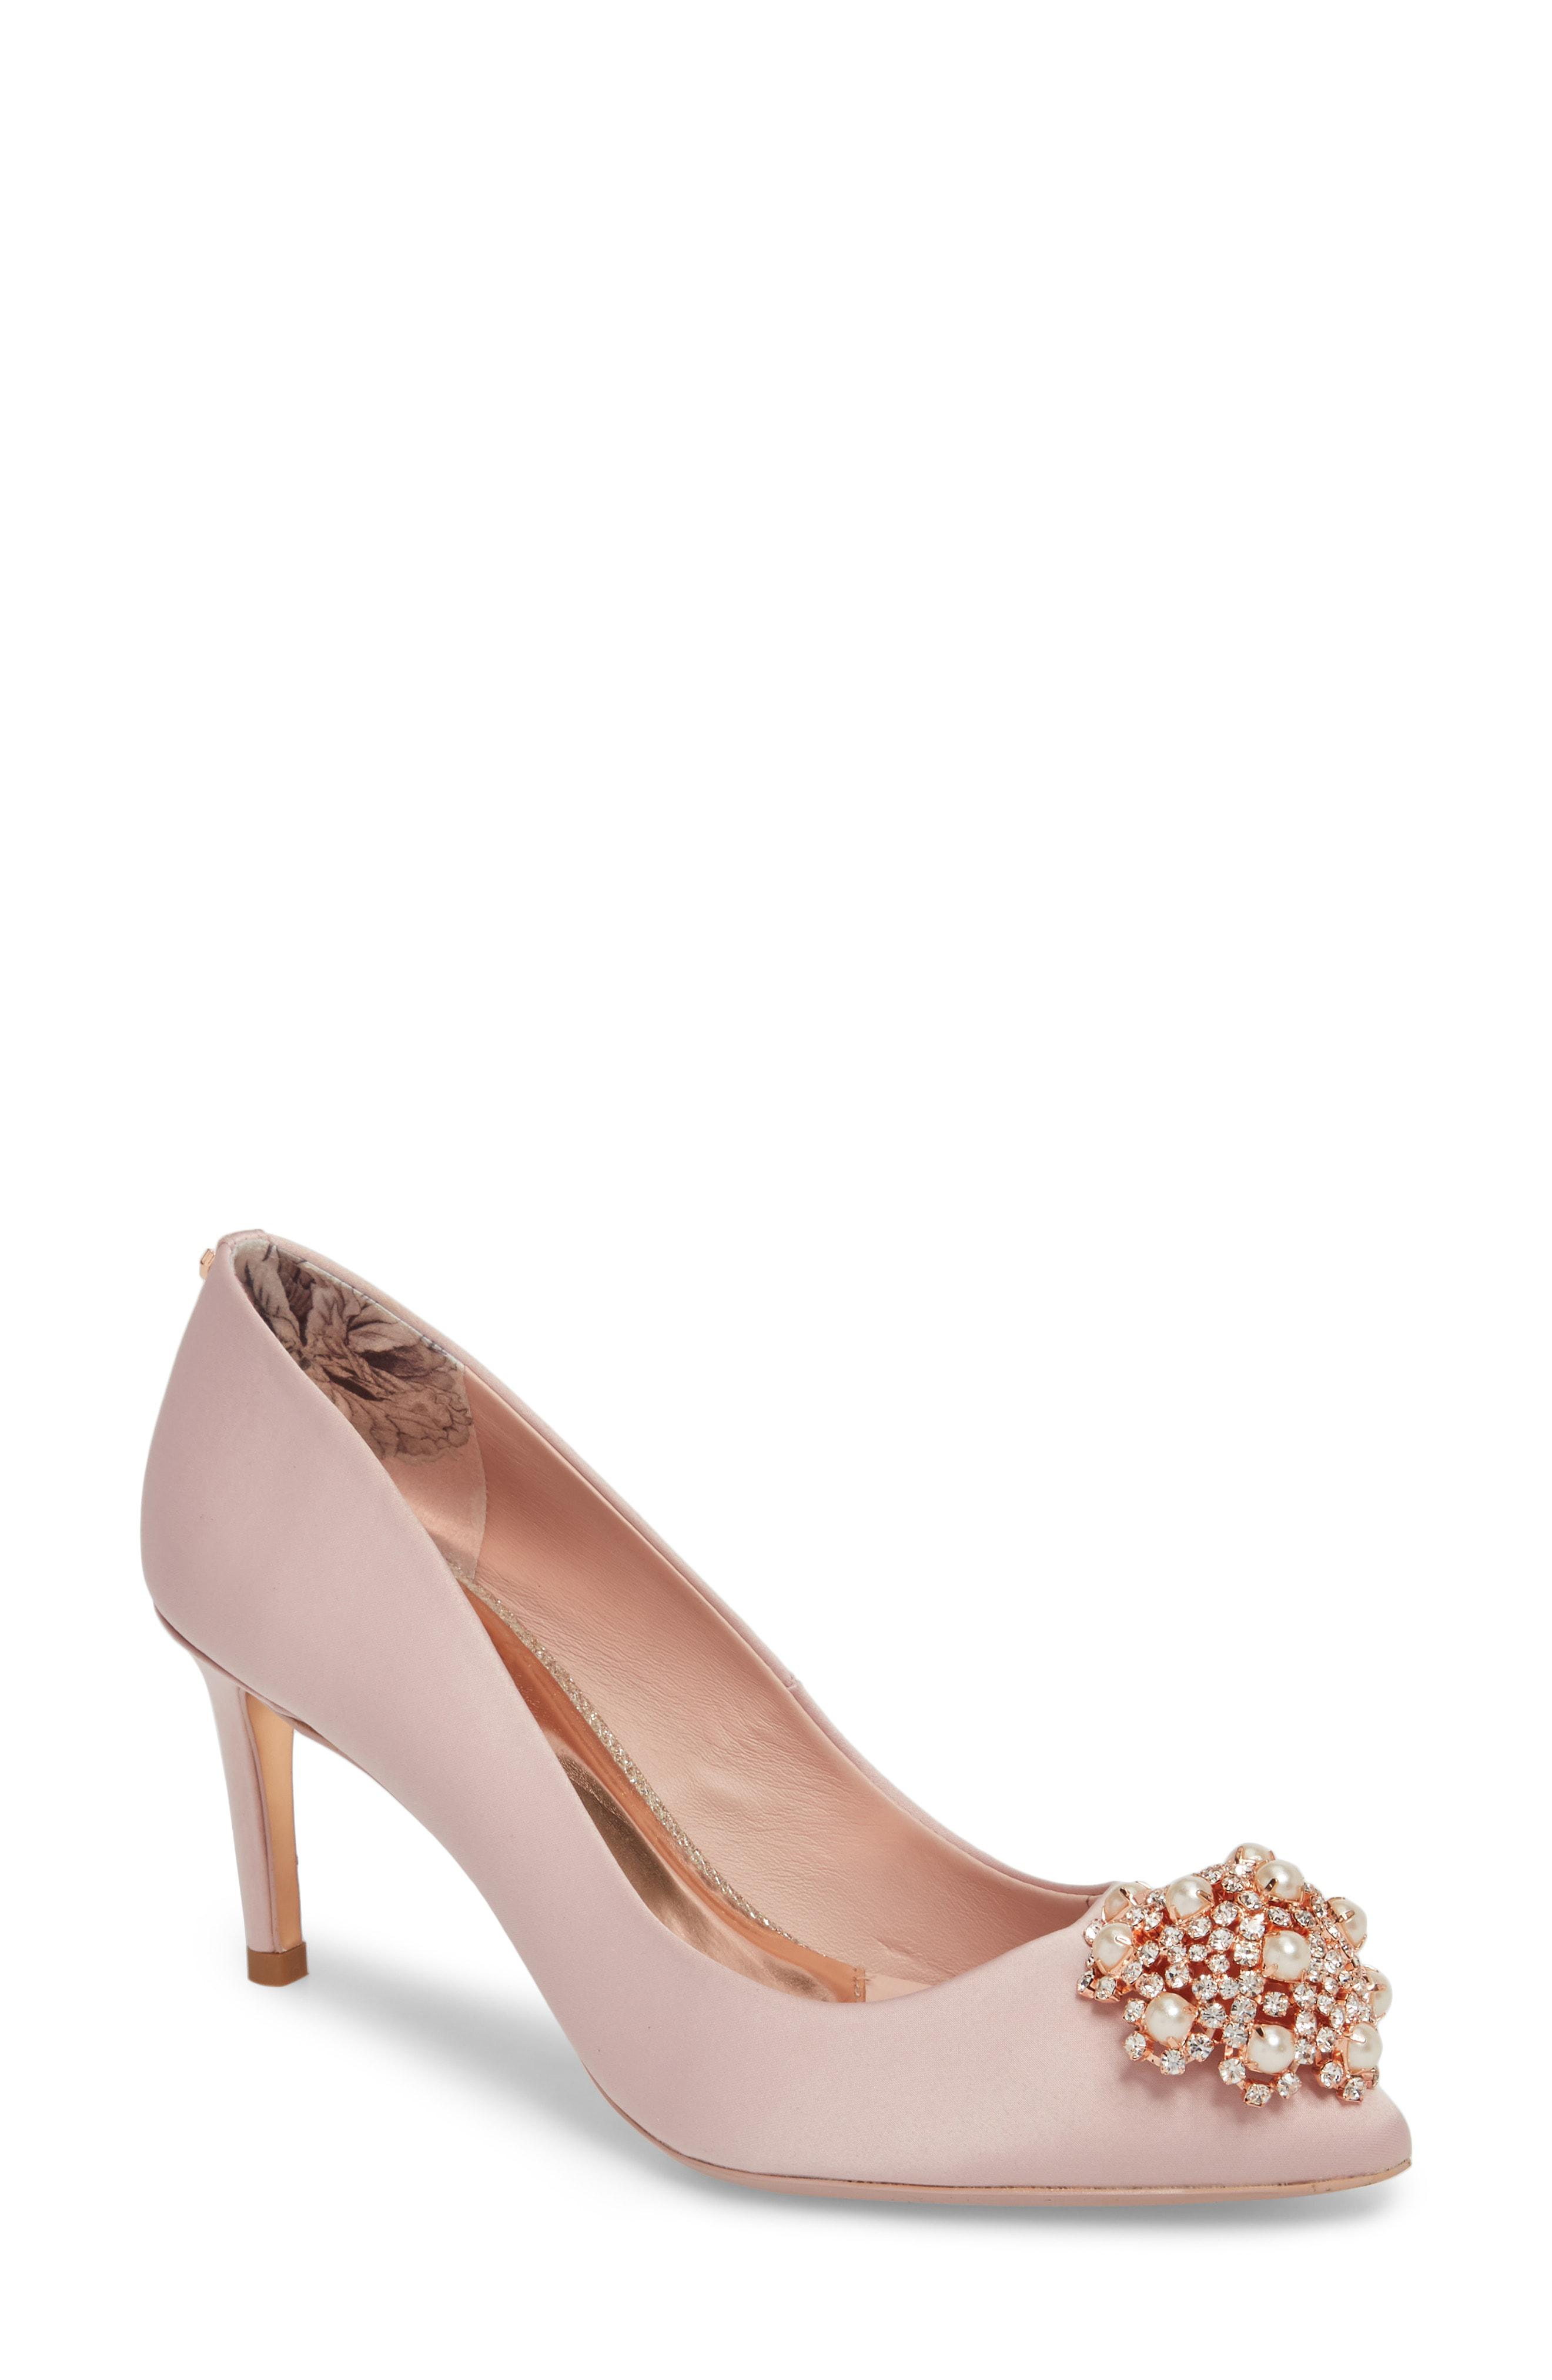 28a4edcf5bb Lyst - Ted Baker Dahrlin Embellished Pump in Pink